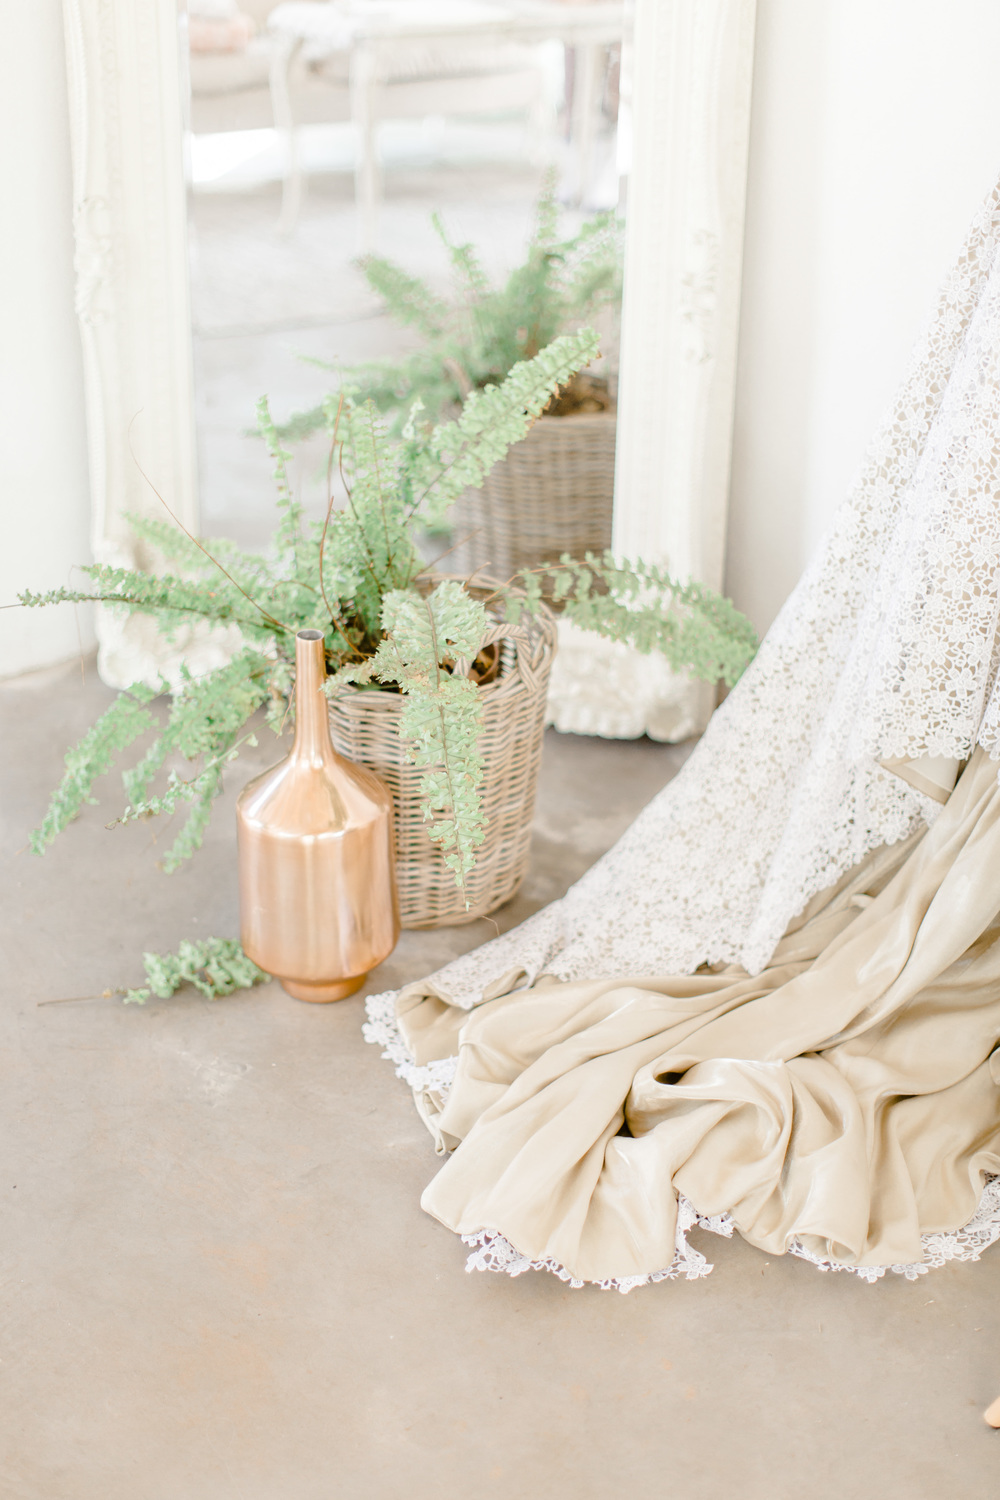 Nathan Zia Lace on Timber wedding005.jpg